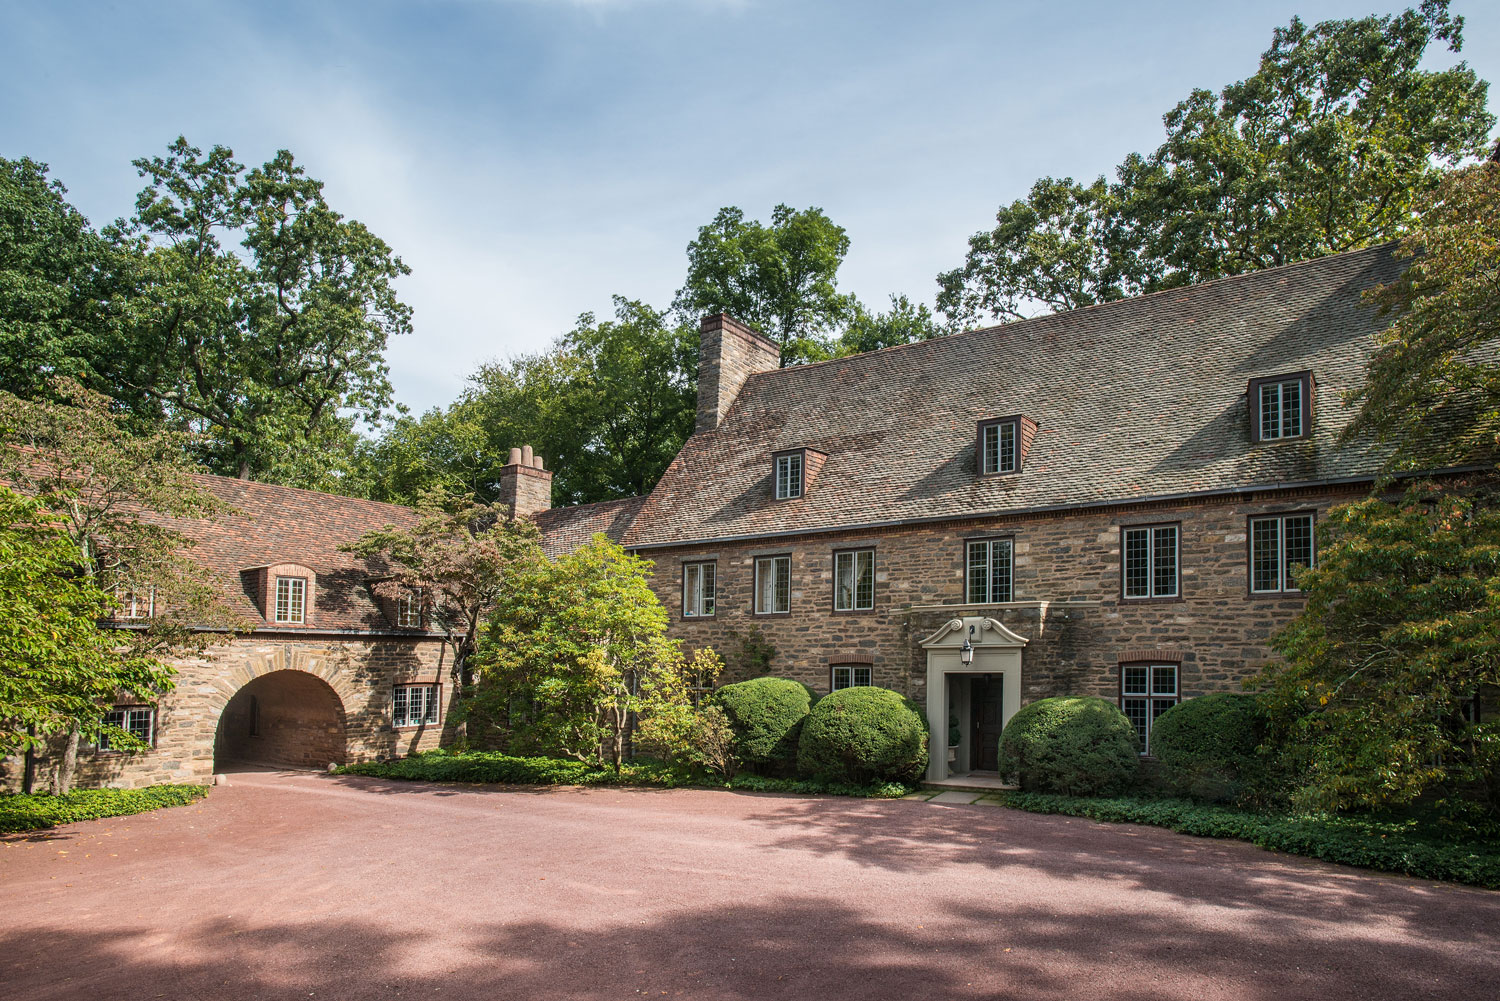 This 1927 stone manor by illustrious architect H.T. Lindeberg has a memorable setting on 8.6 acres of grounds in one of the most exclusive areas of Greenwich, Connecticut.